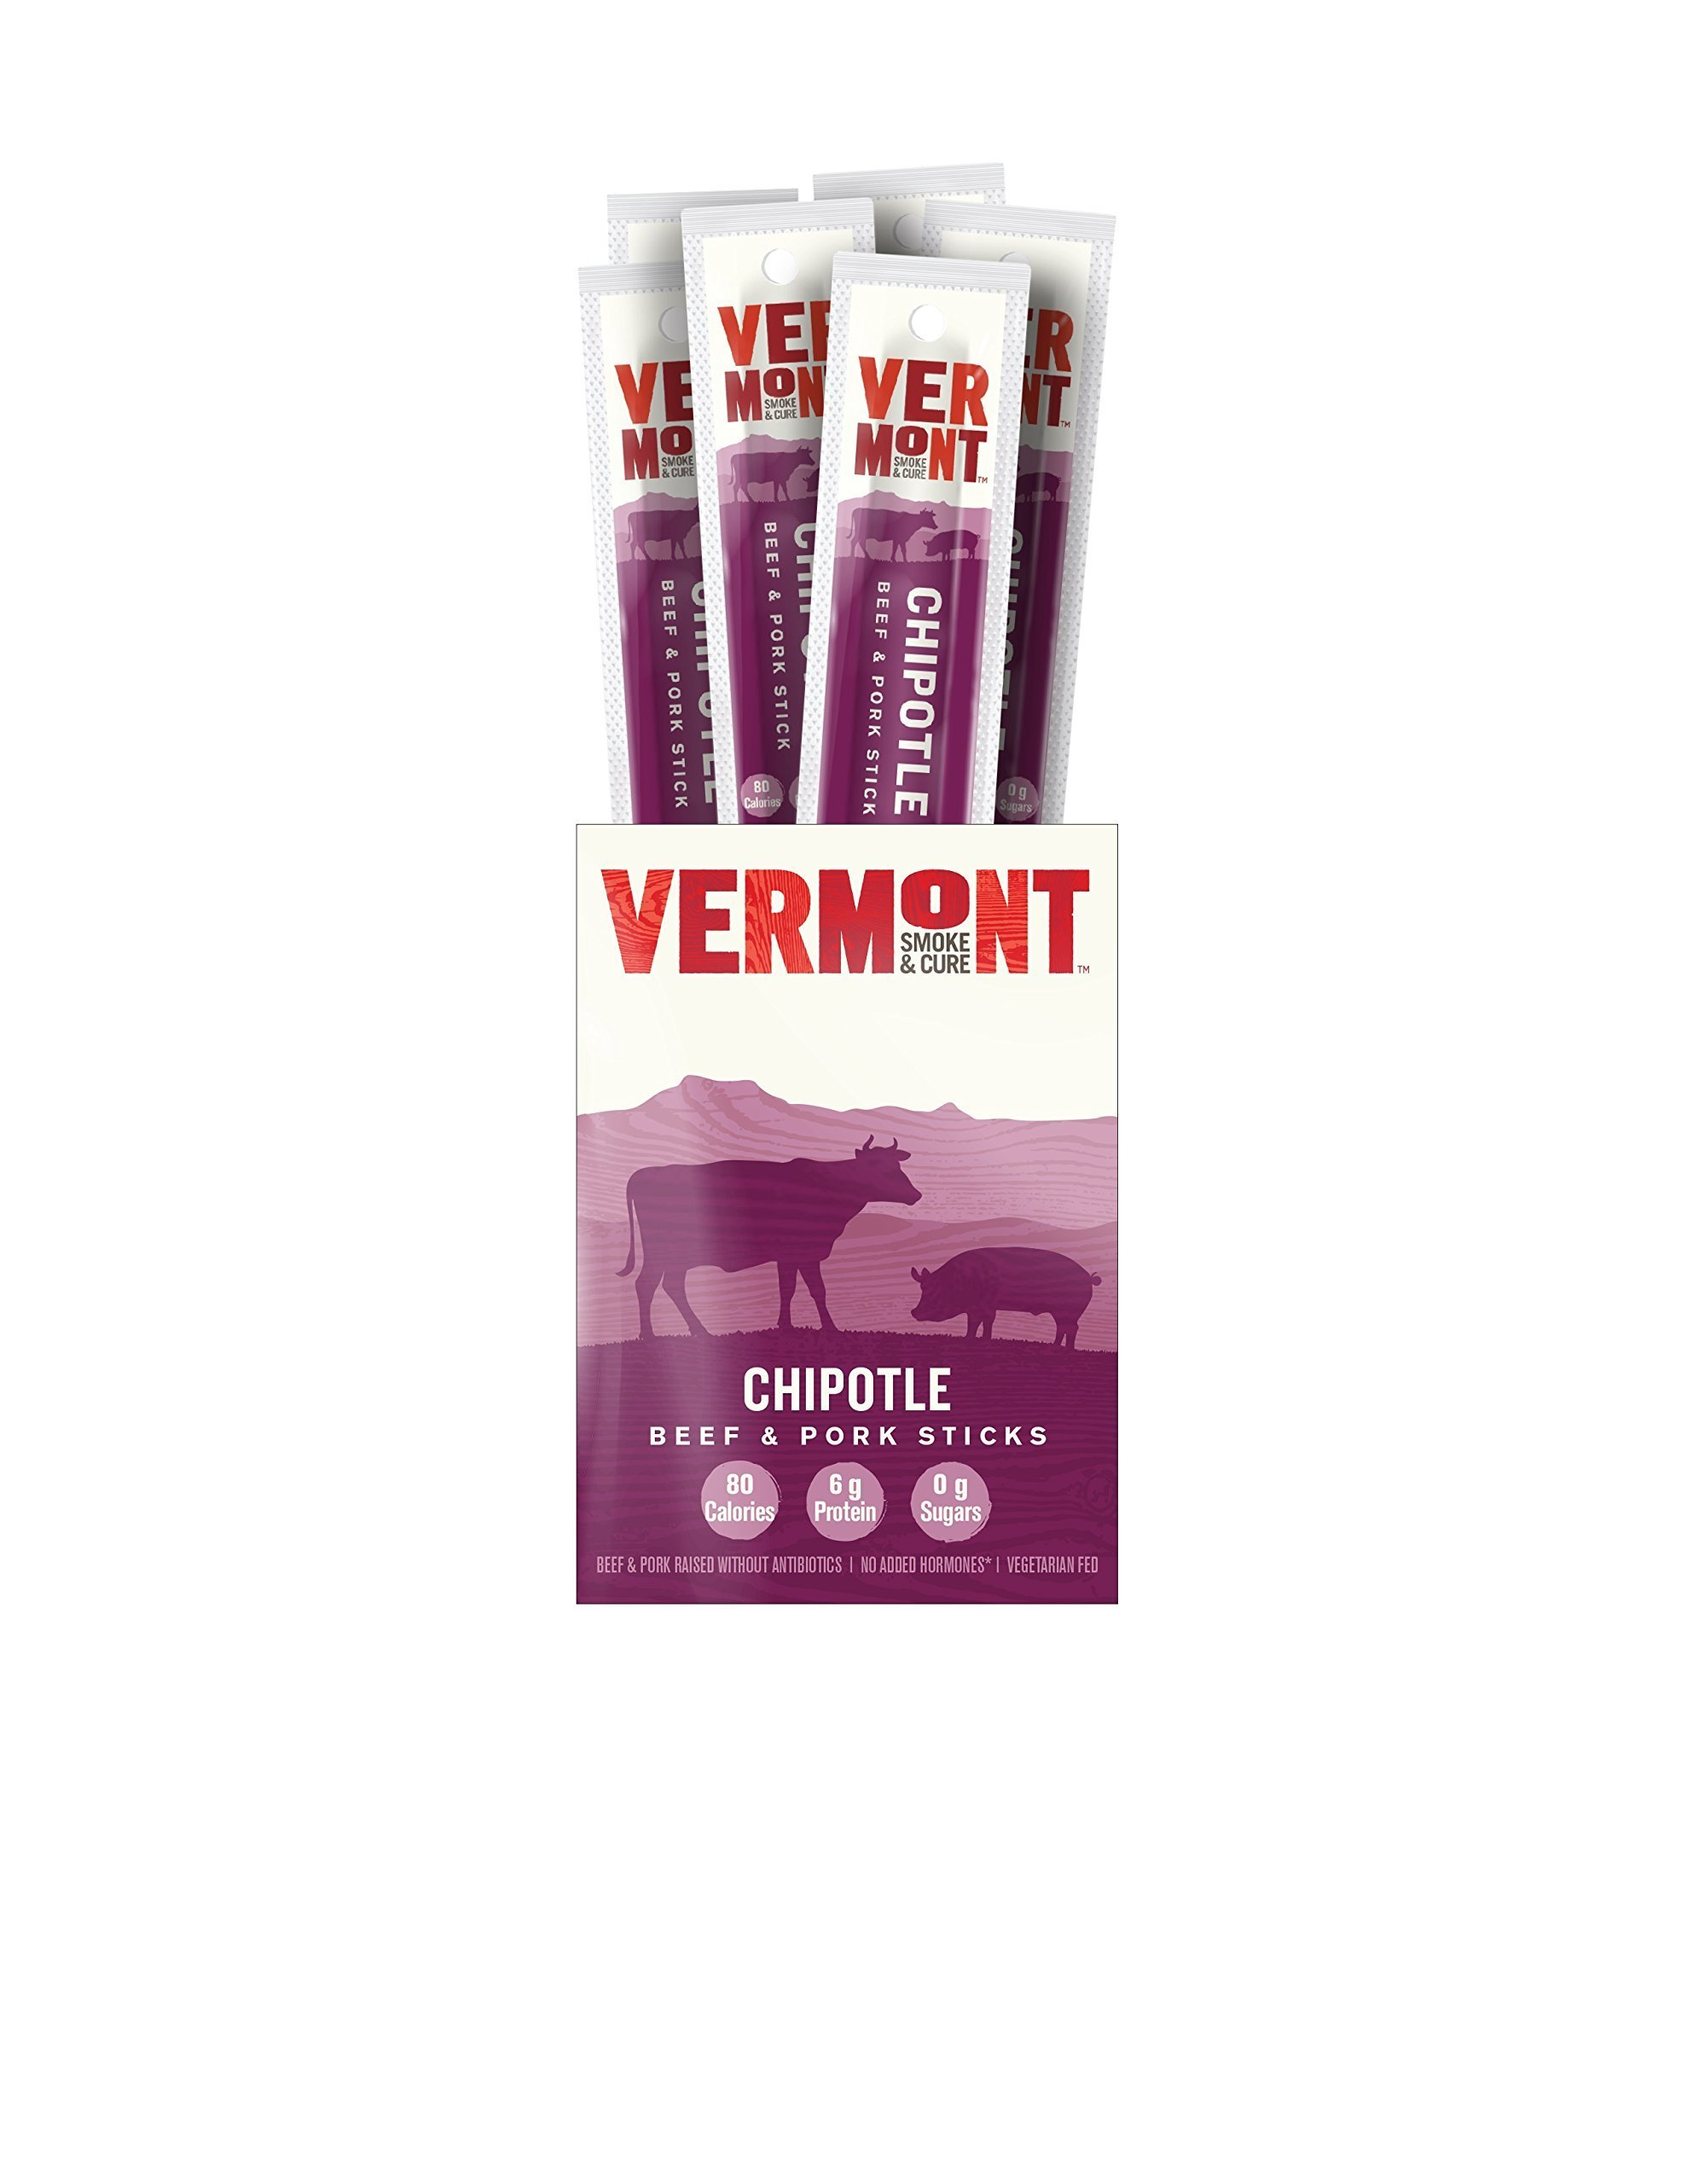 Vermont Smoke & Cure Meat Sticks, Beef & Pork, Antibiotic Free, Gluten Free, Chipotle, 1oz Stick, 24 Count by Vermont Smoke and Cure (Image #8)